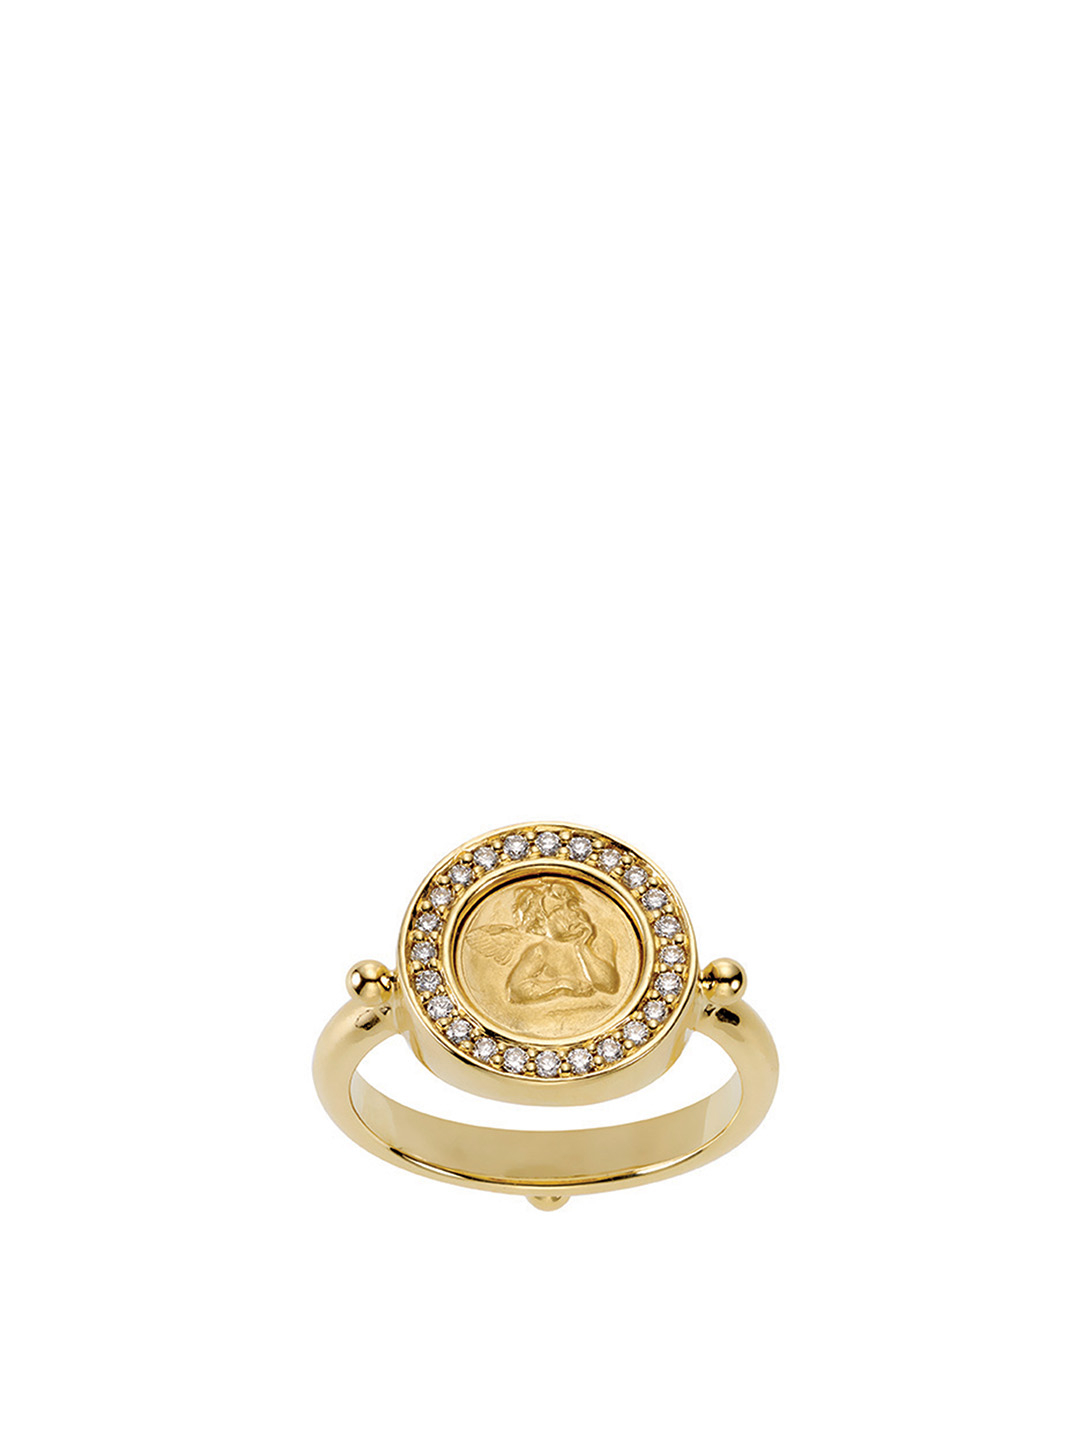 TEMPLE ST. CLAIR Bague Angel en or 18 ct ornée de diamants Femmes Or